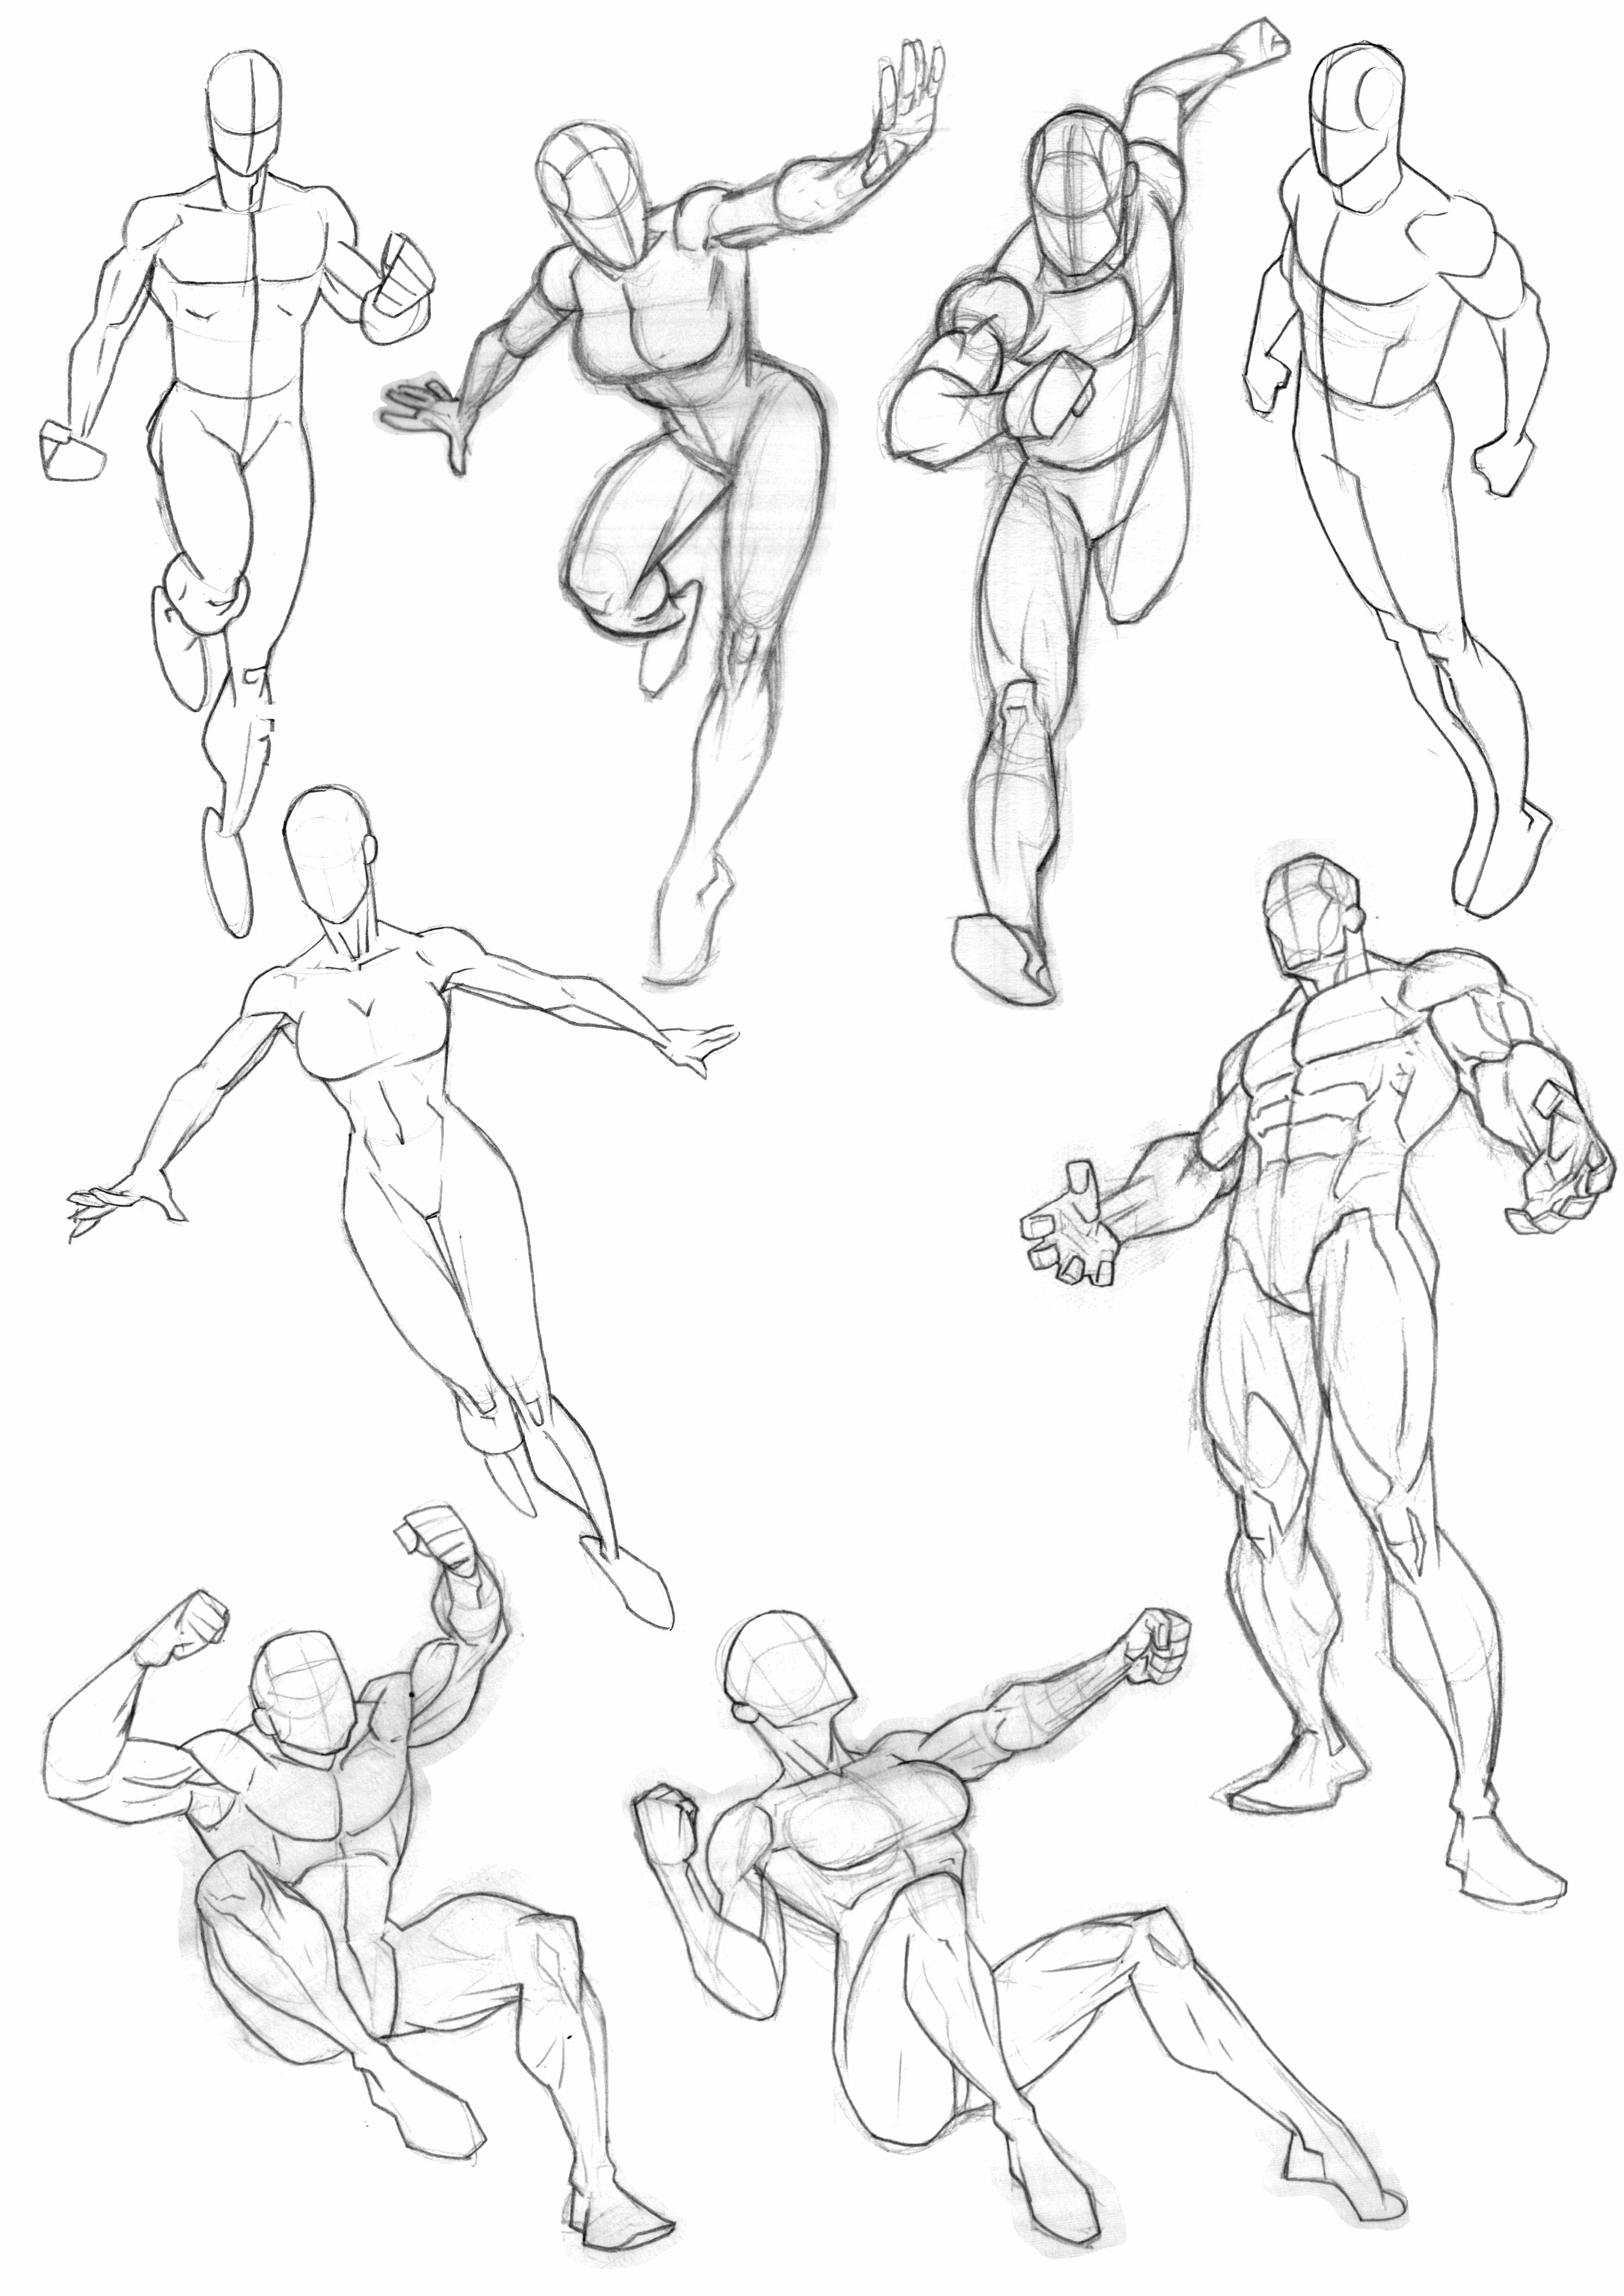 Latest compilation of anatomy and pose sketches from my